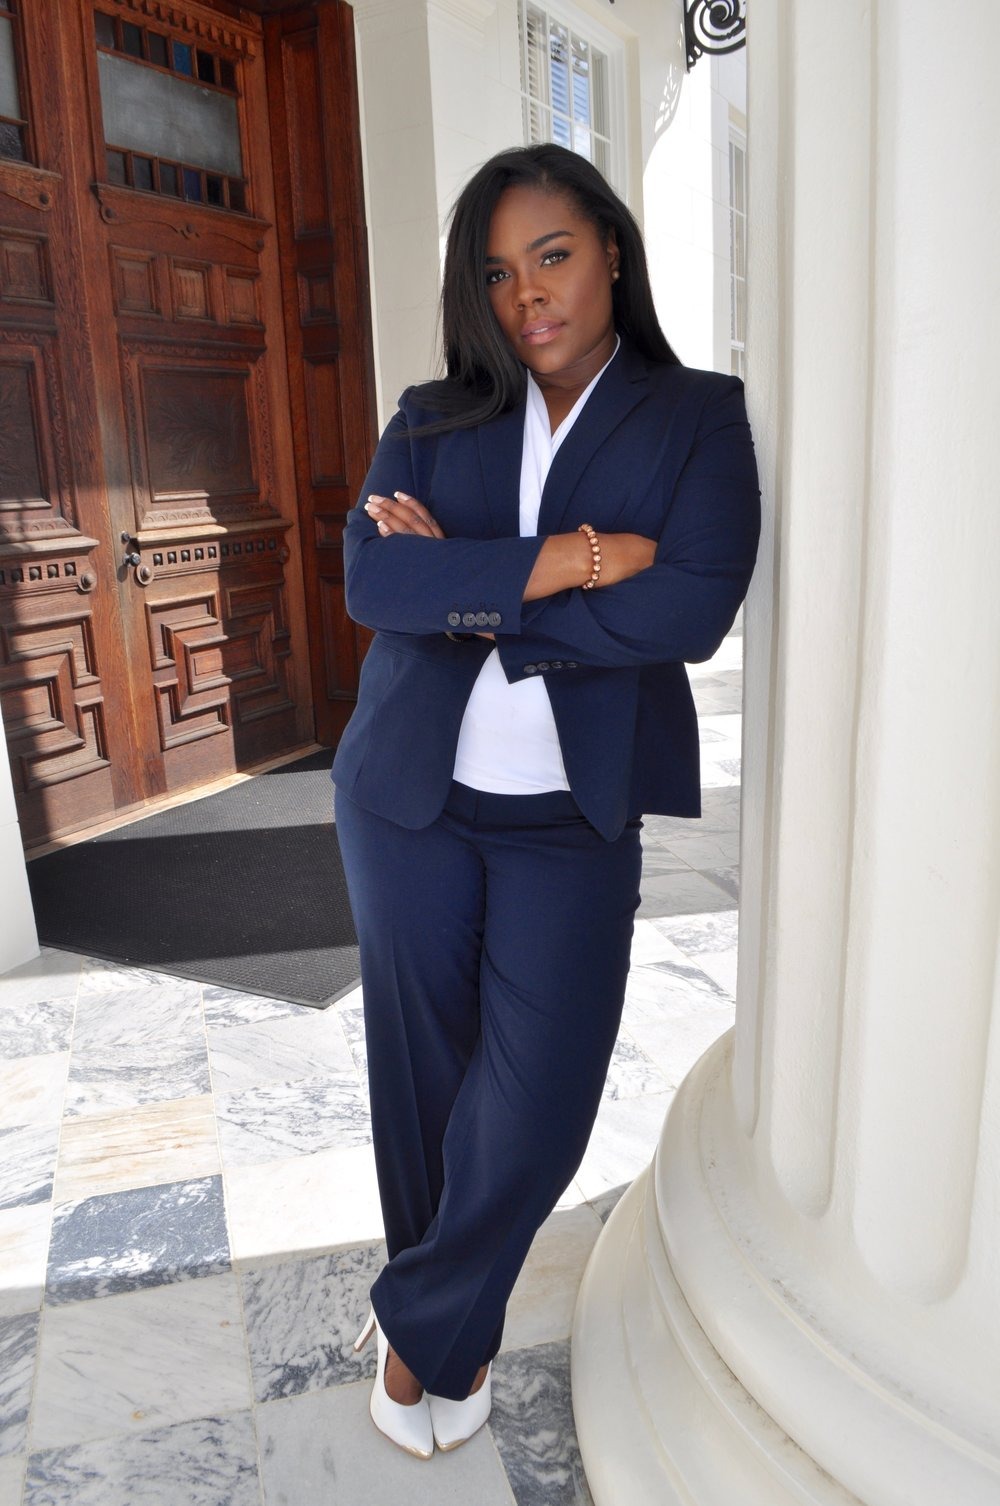 Kia Scott at the Capital